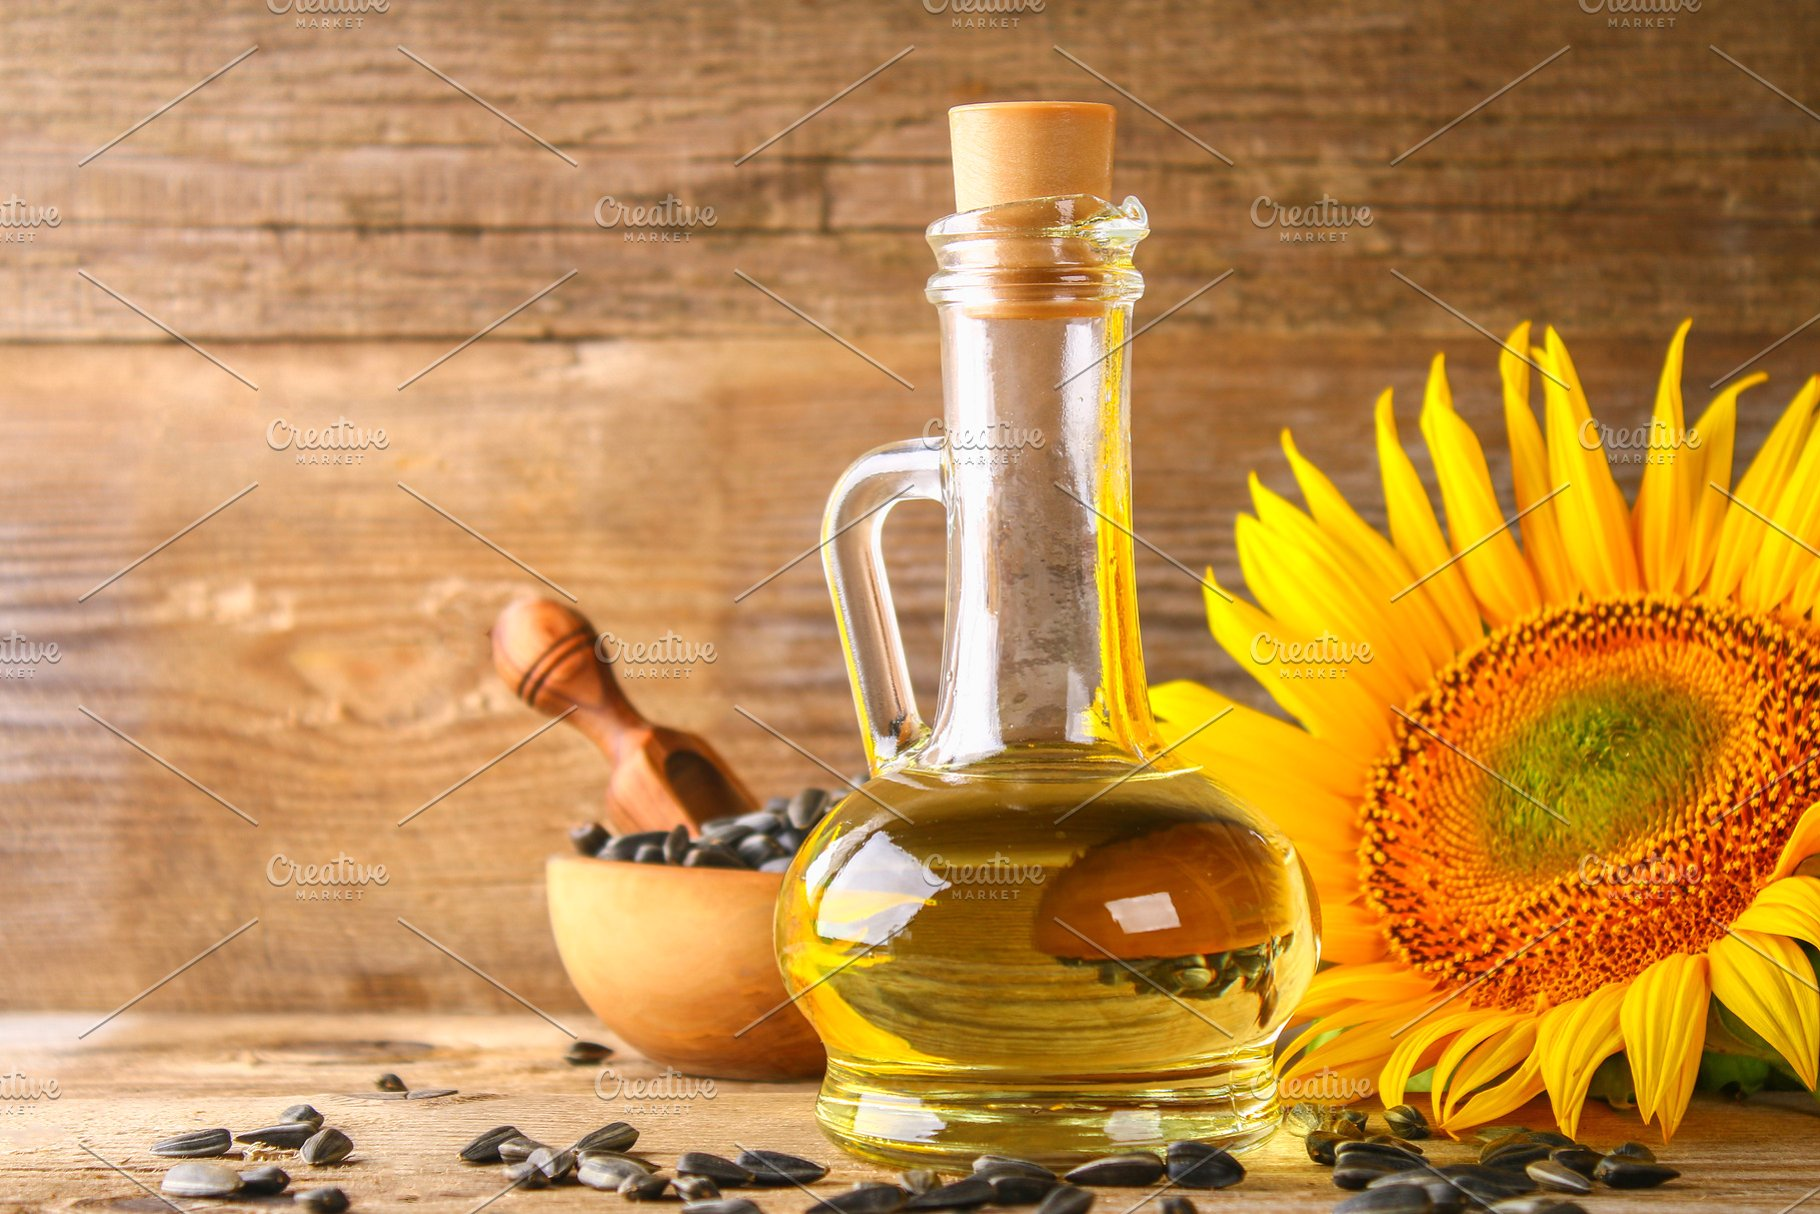 Turkey could increase sunoil imports - 15.05.2020